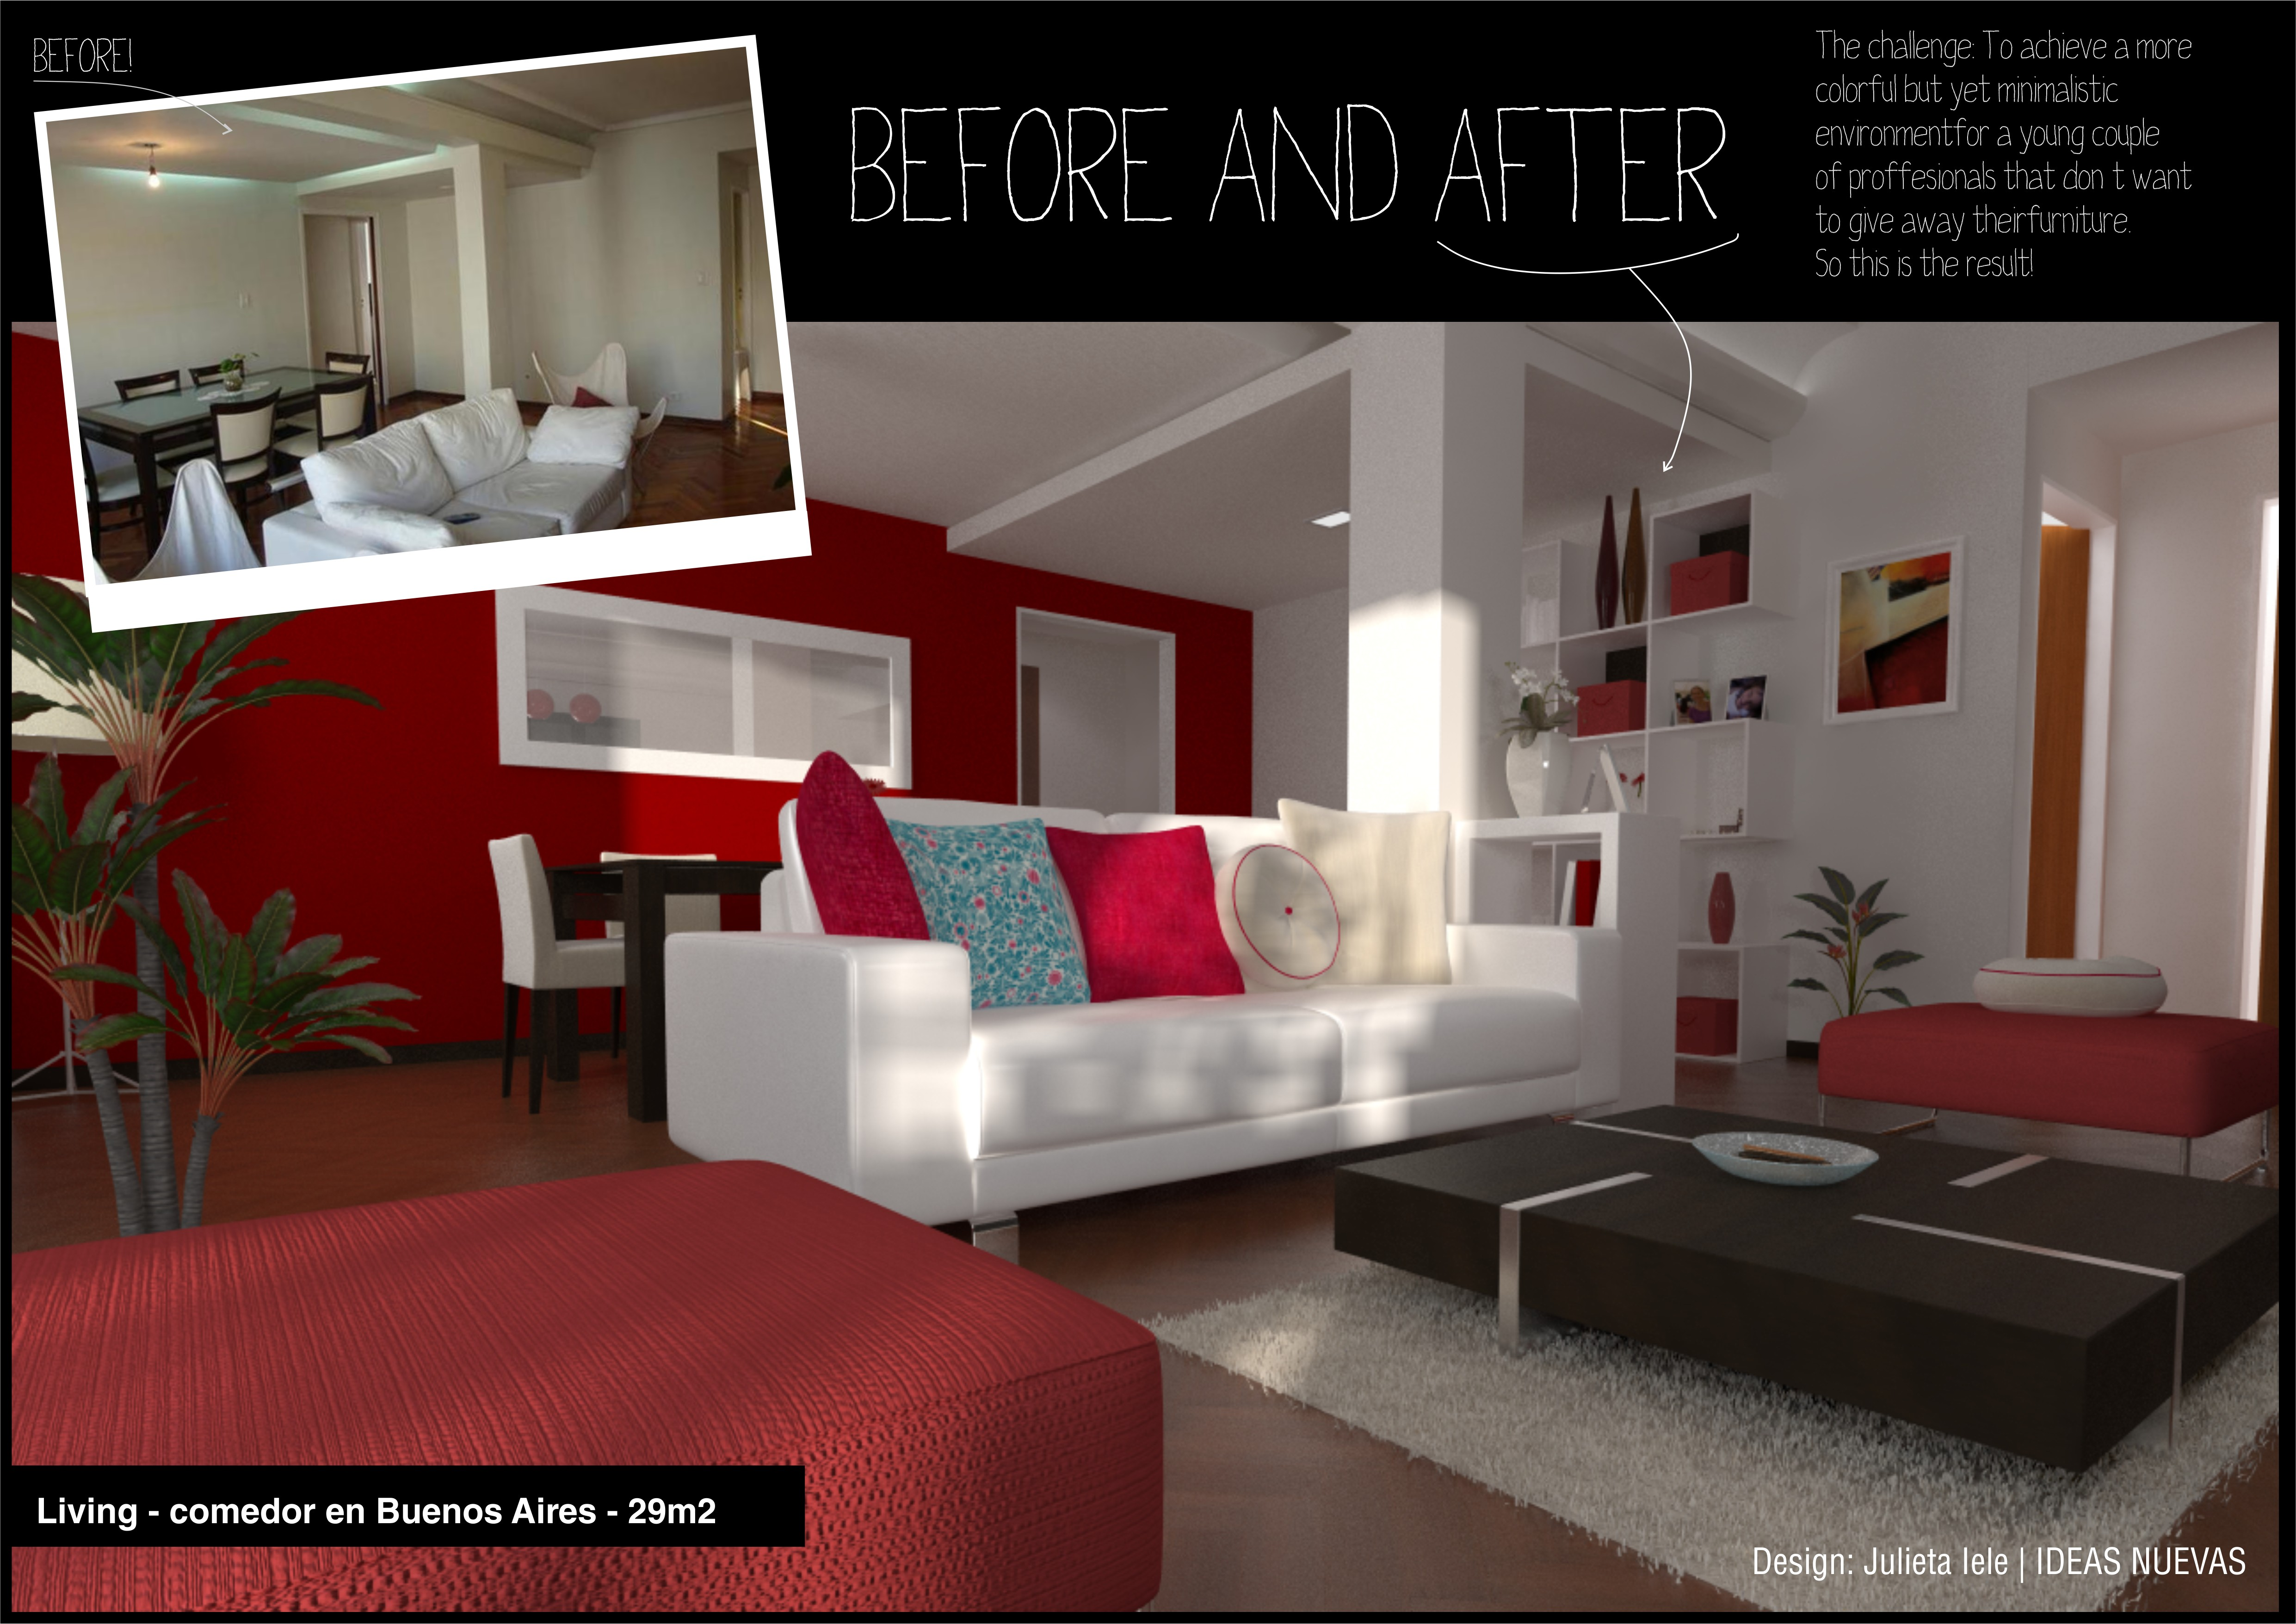 Interior design before and after by julieta iele at - What is interior design ...